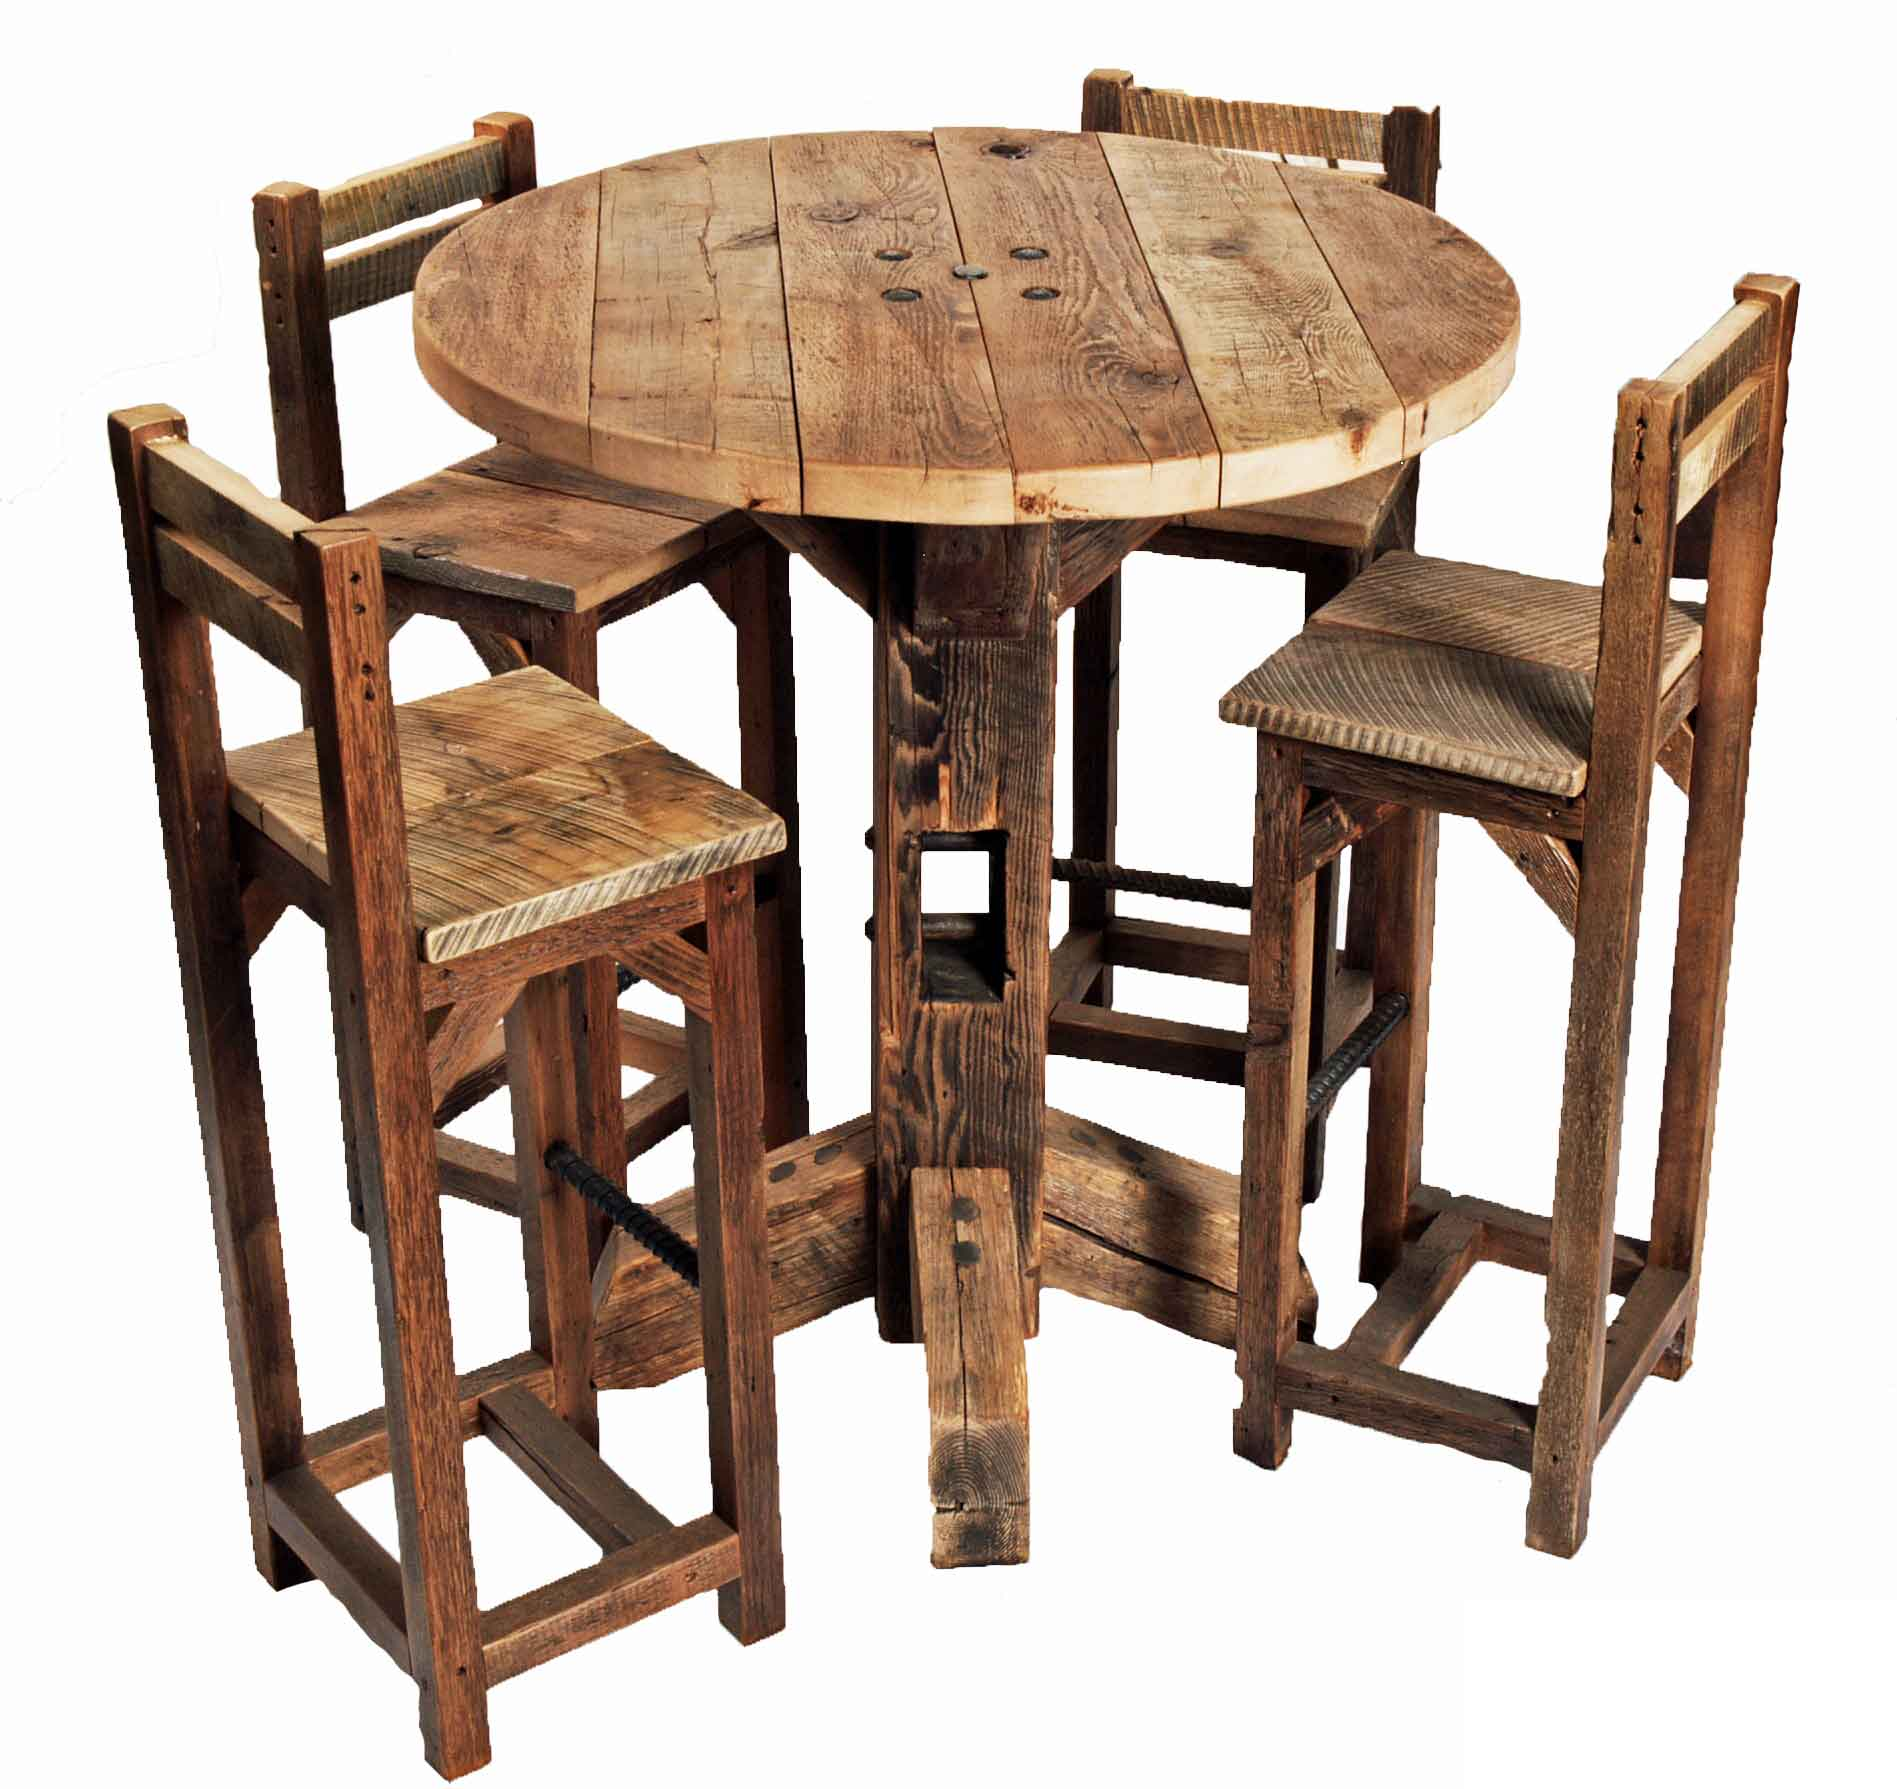 Remarkable Round Pub Table and Chairs 1897 x 1789 · 159 kB · jpeg